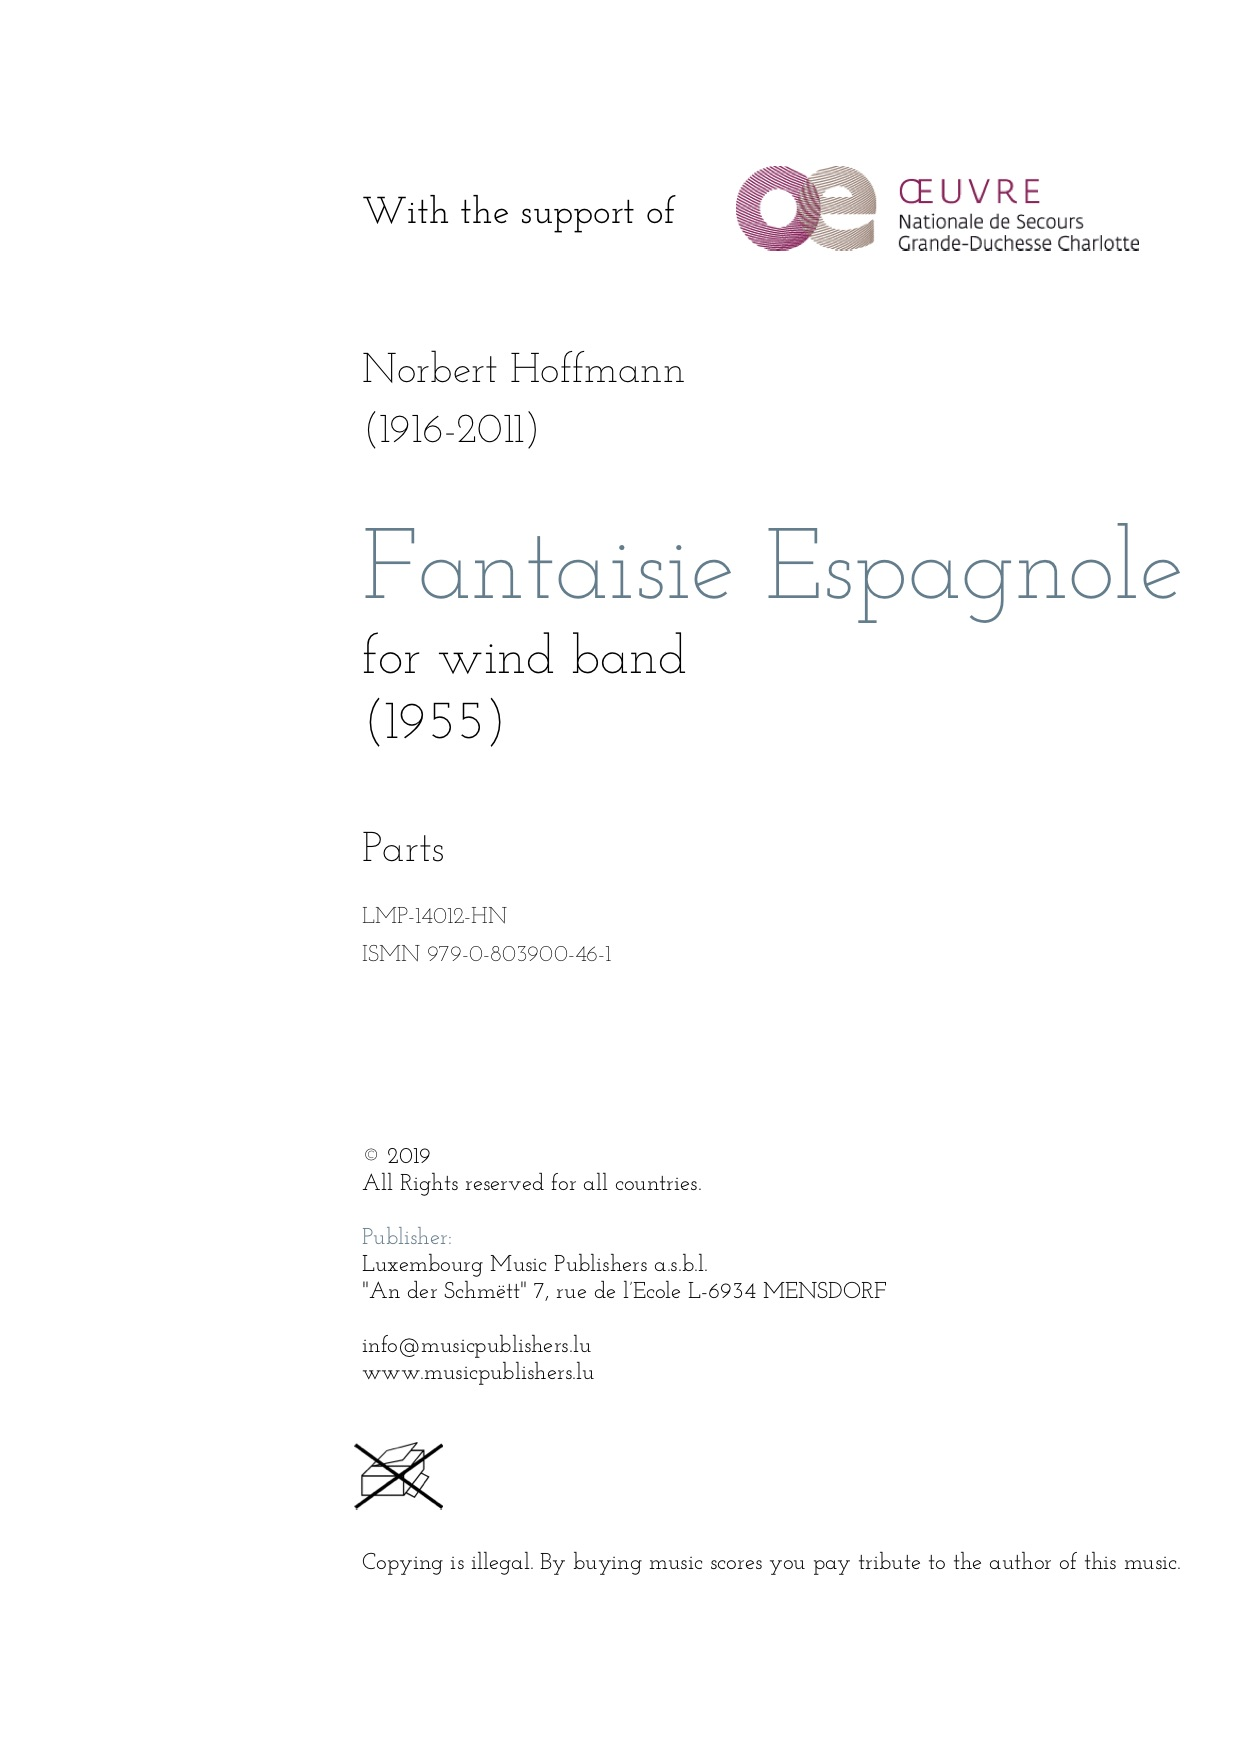 Fantaisie Espagnole. Sheet Music by Norbert Hoffmann, composer. Music for wind orchestra. Music for symphonic wind orchestra/band. Parts.